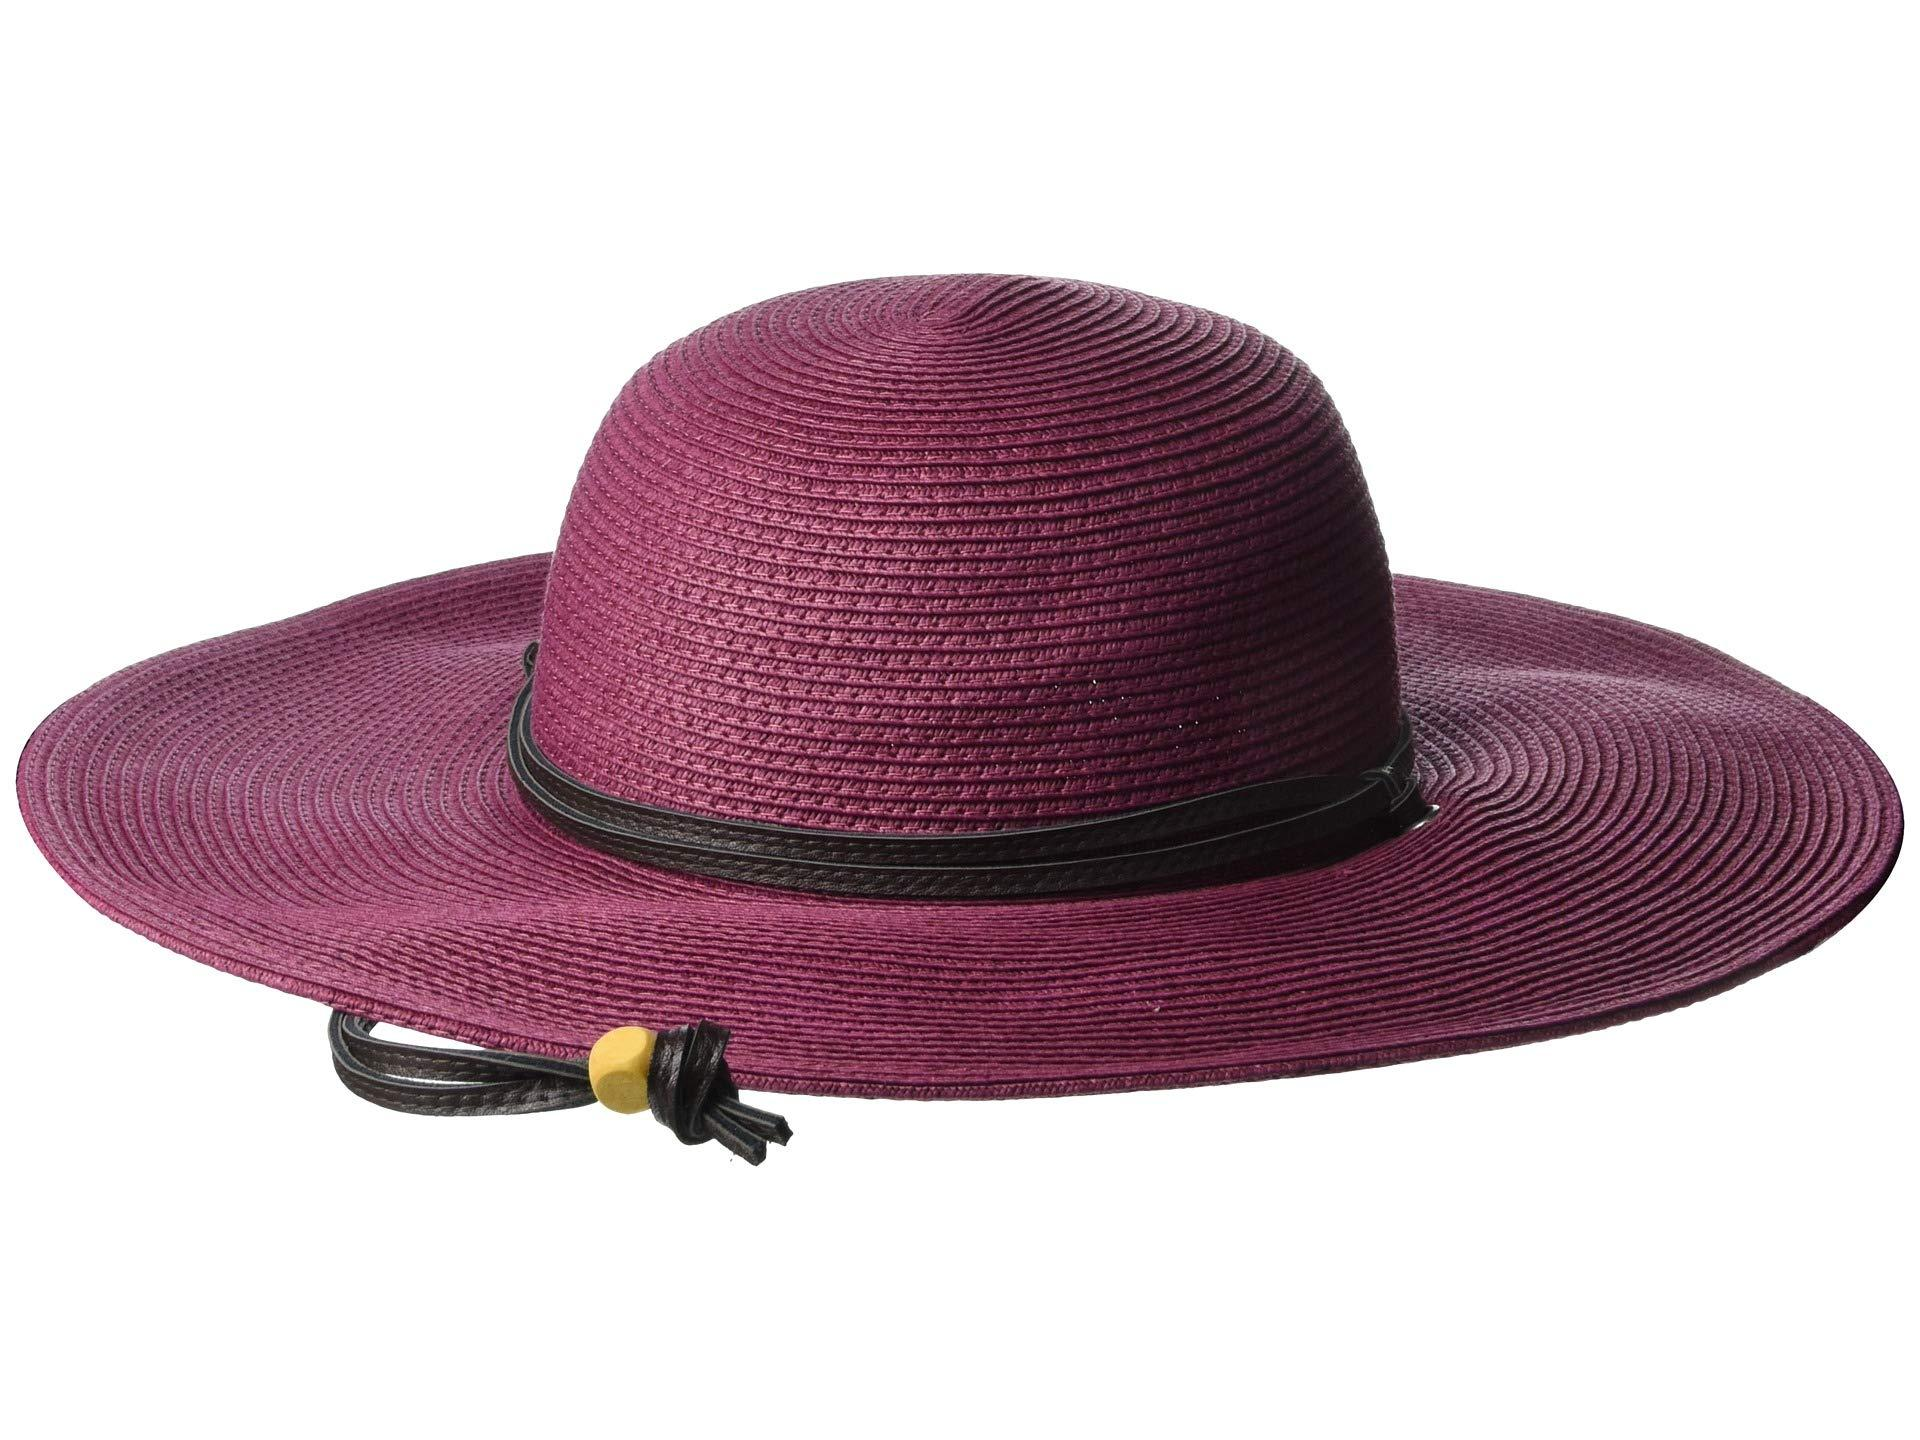 d5f088774 Lyst - Columbia Global Adventuretm Packable Hat (wine Berry ...